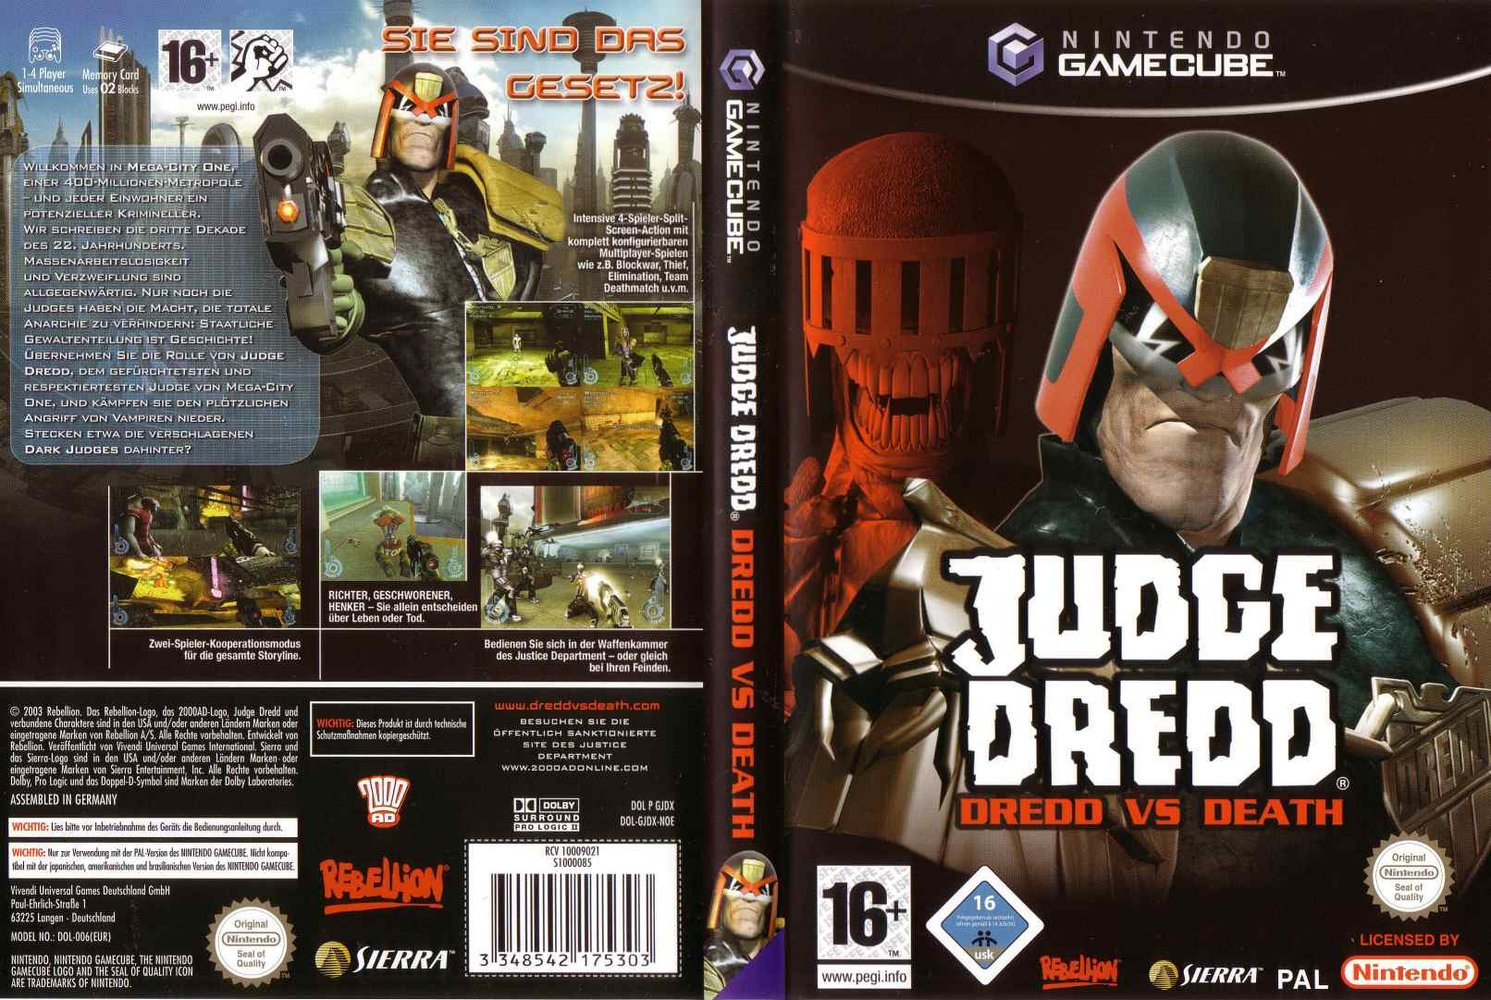 Judge dredd dredd vs death gamecube controls